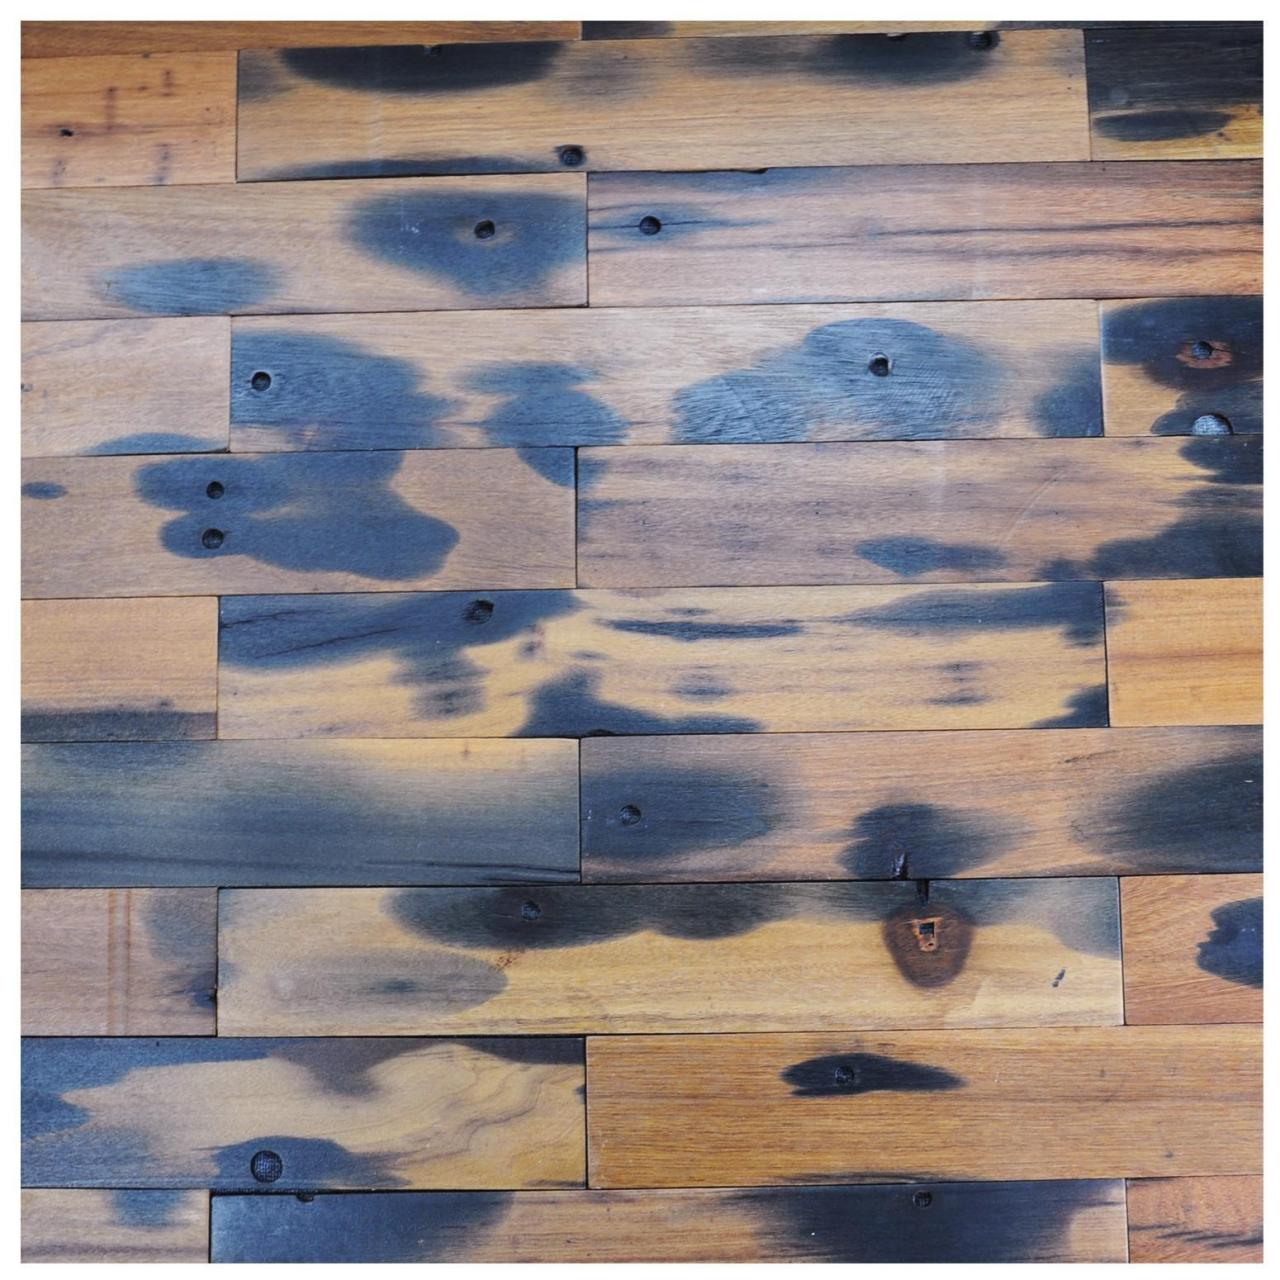 Buy cheap A15602 - Reclaimed Boat Wood Tiles 4 X 24 In Interior Wall Mosaic from wholesalers